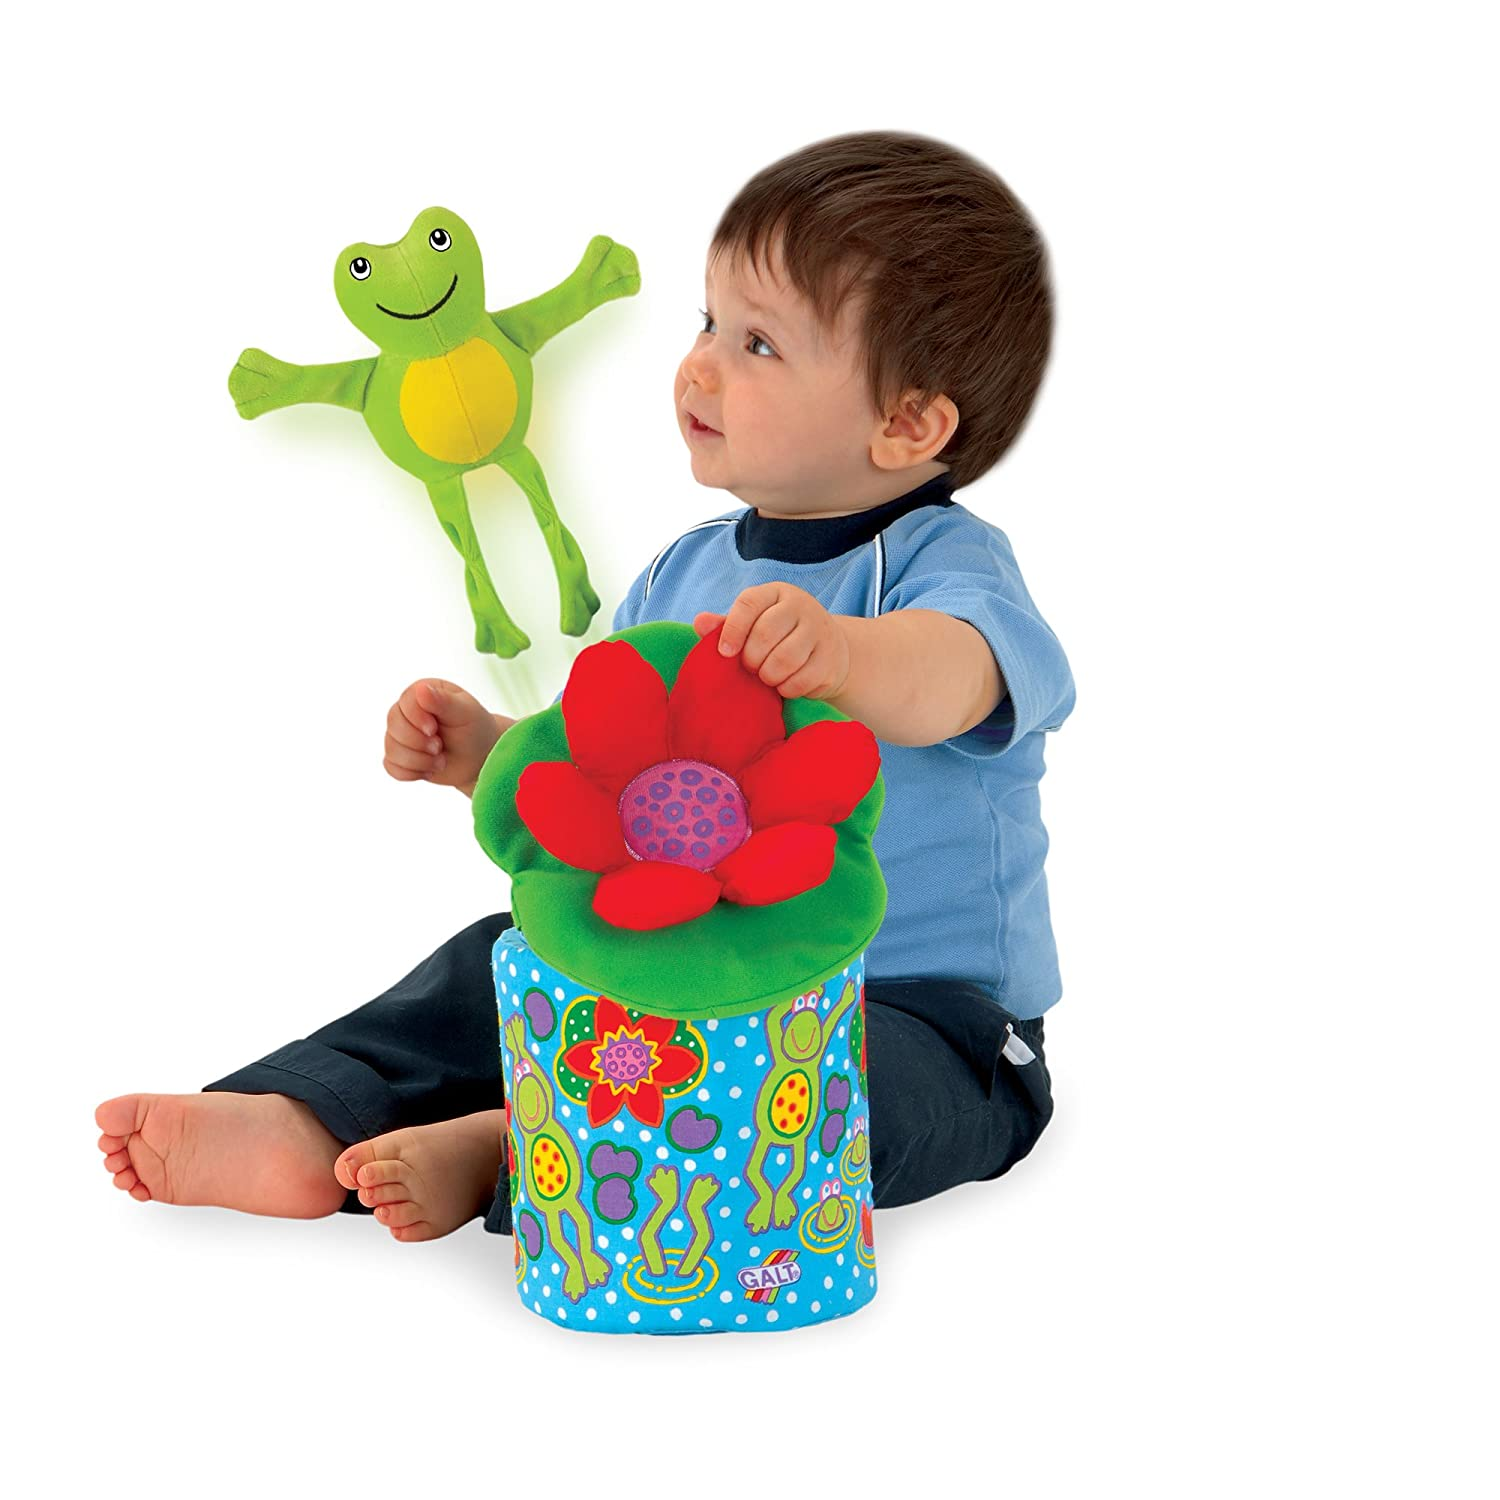 Galt Toys Frog in a Box Toy Amazon Toys & Games